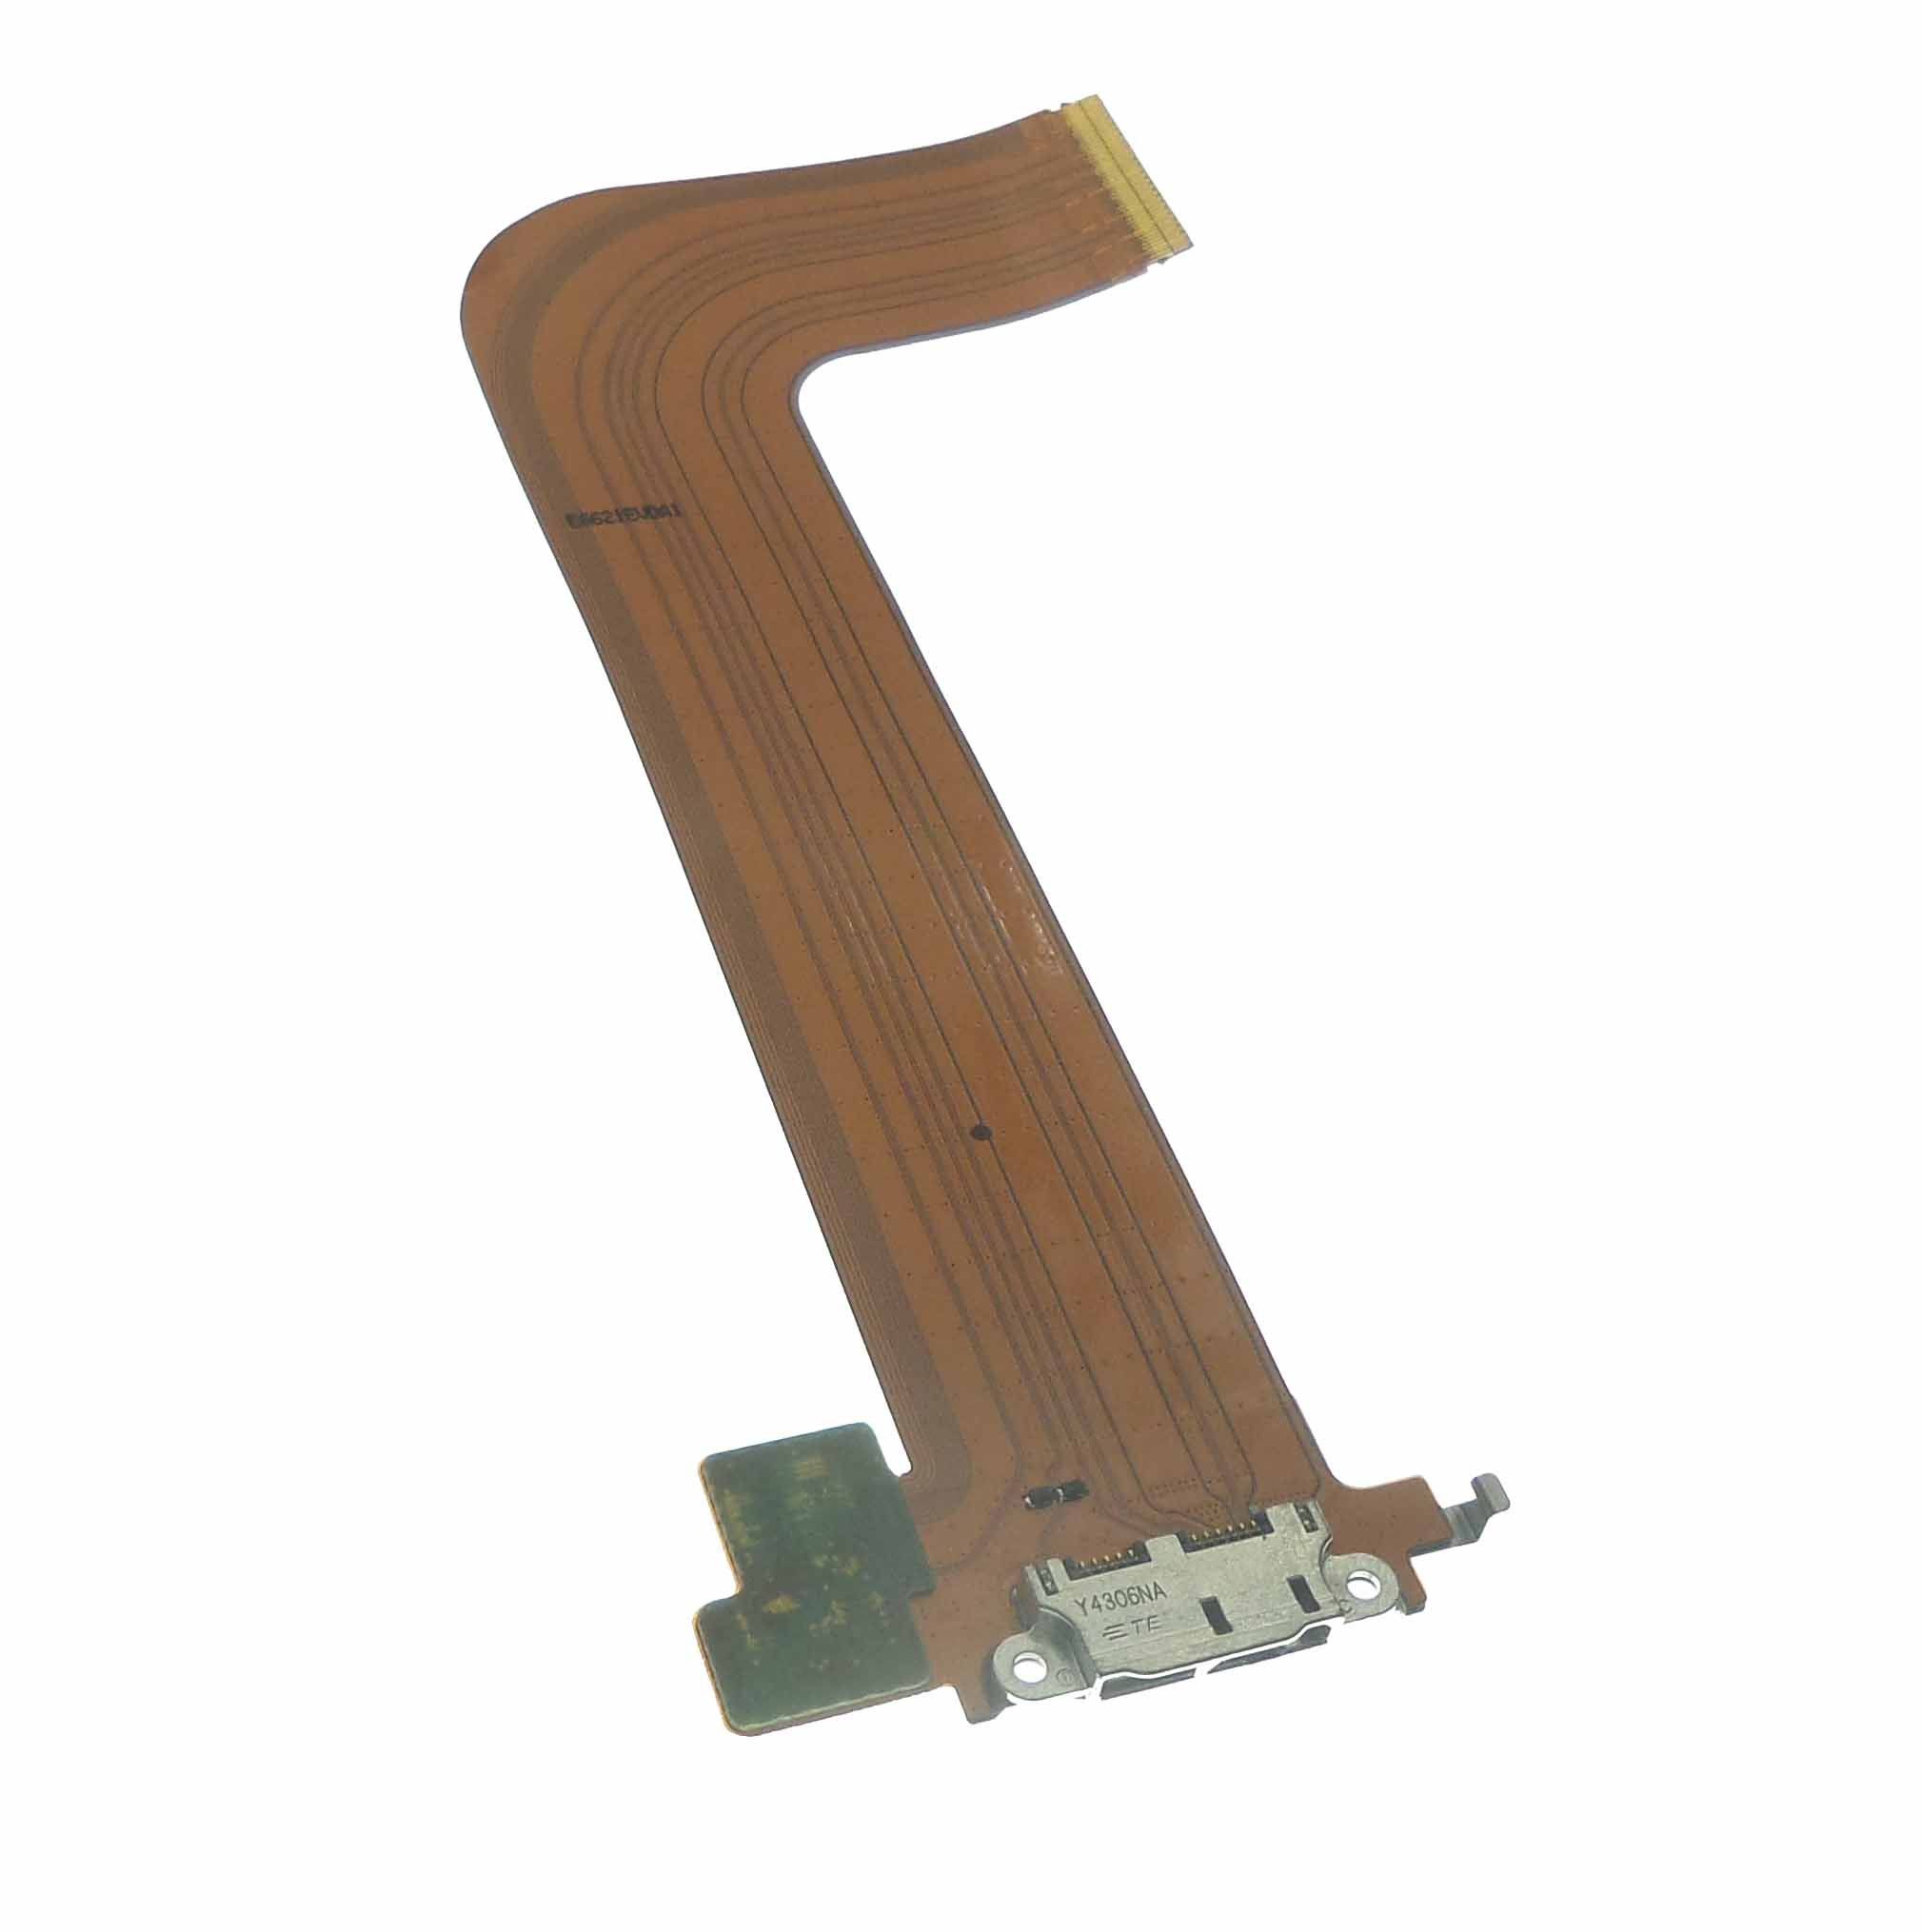 Dock Of Flexible Load With Samsung Galaxy Pro 122 P900 P905 Note P901 Usb Connector